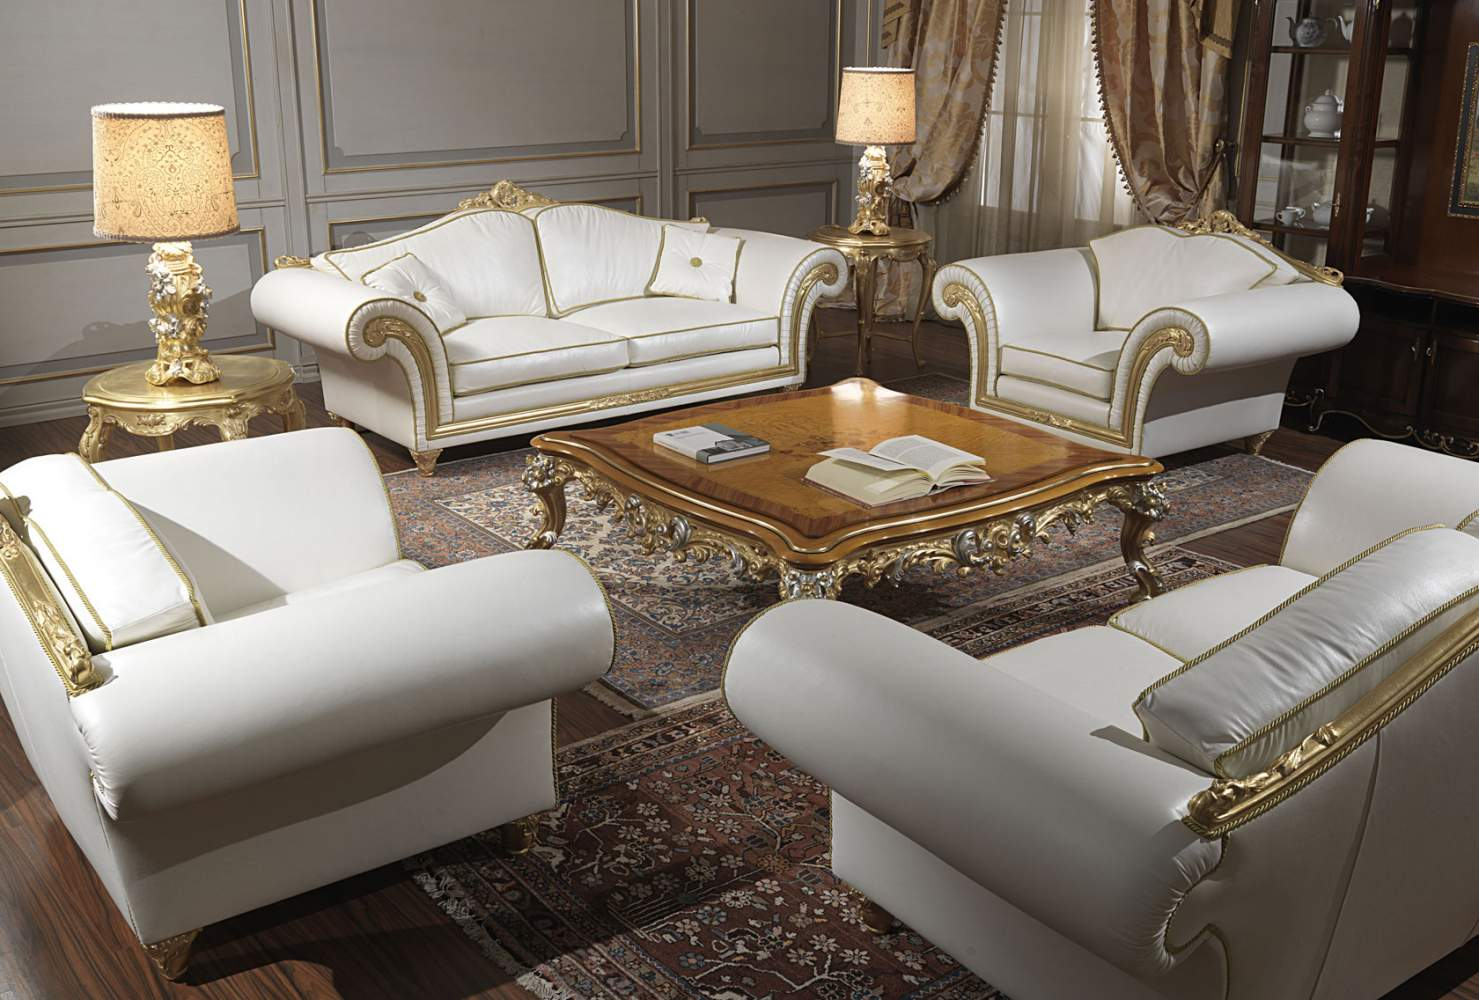 Imperial living room in white leather